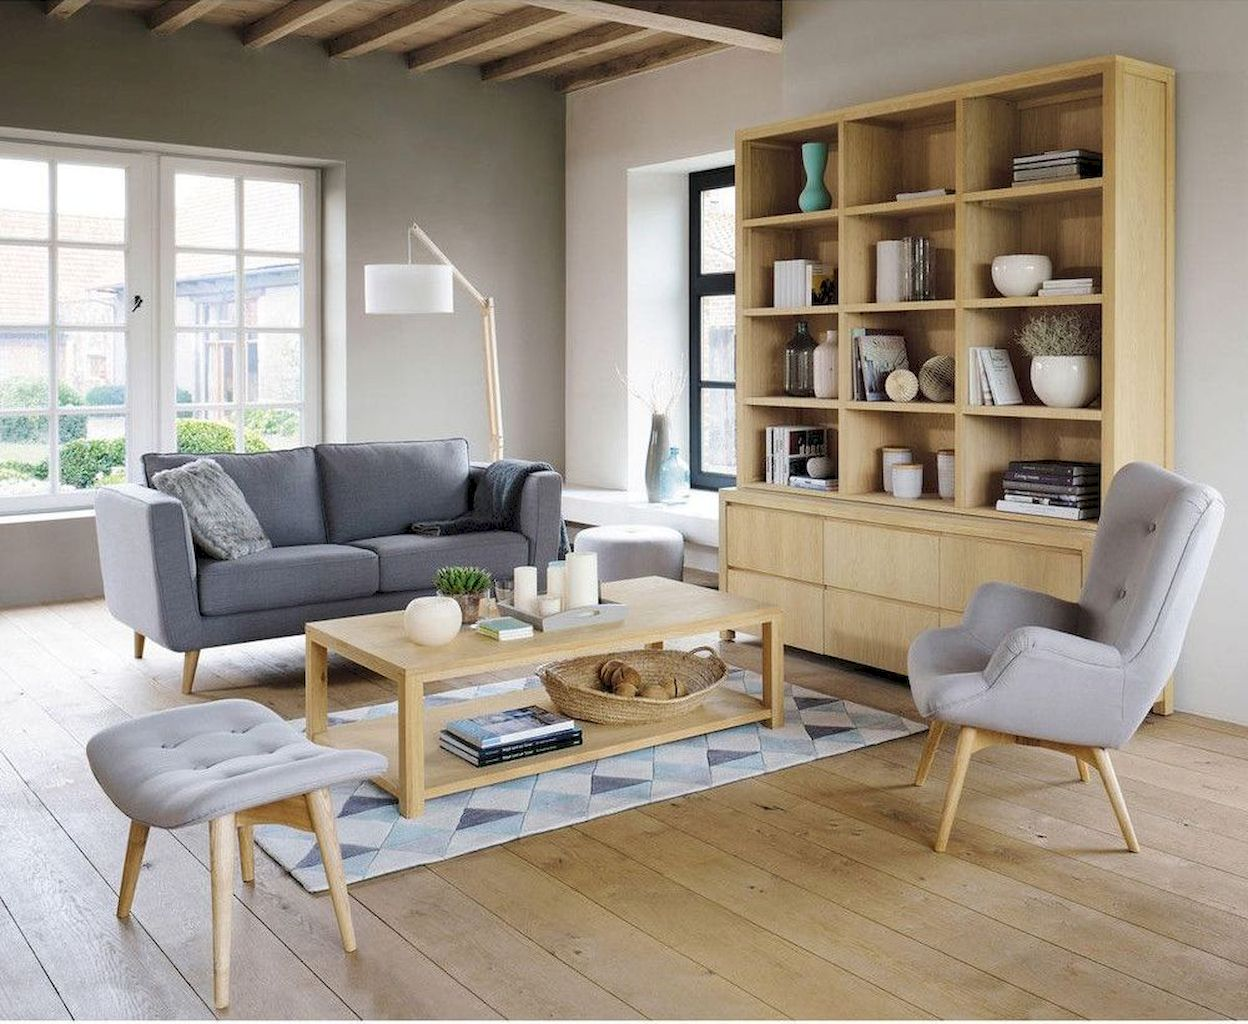 Soft Colored Living Room With Elegant Furniture and Accessories Part 10